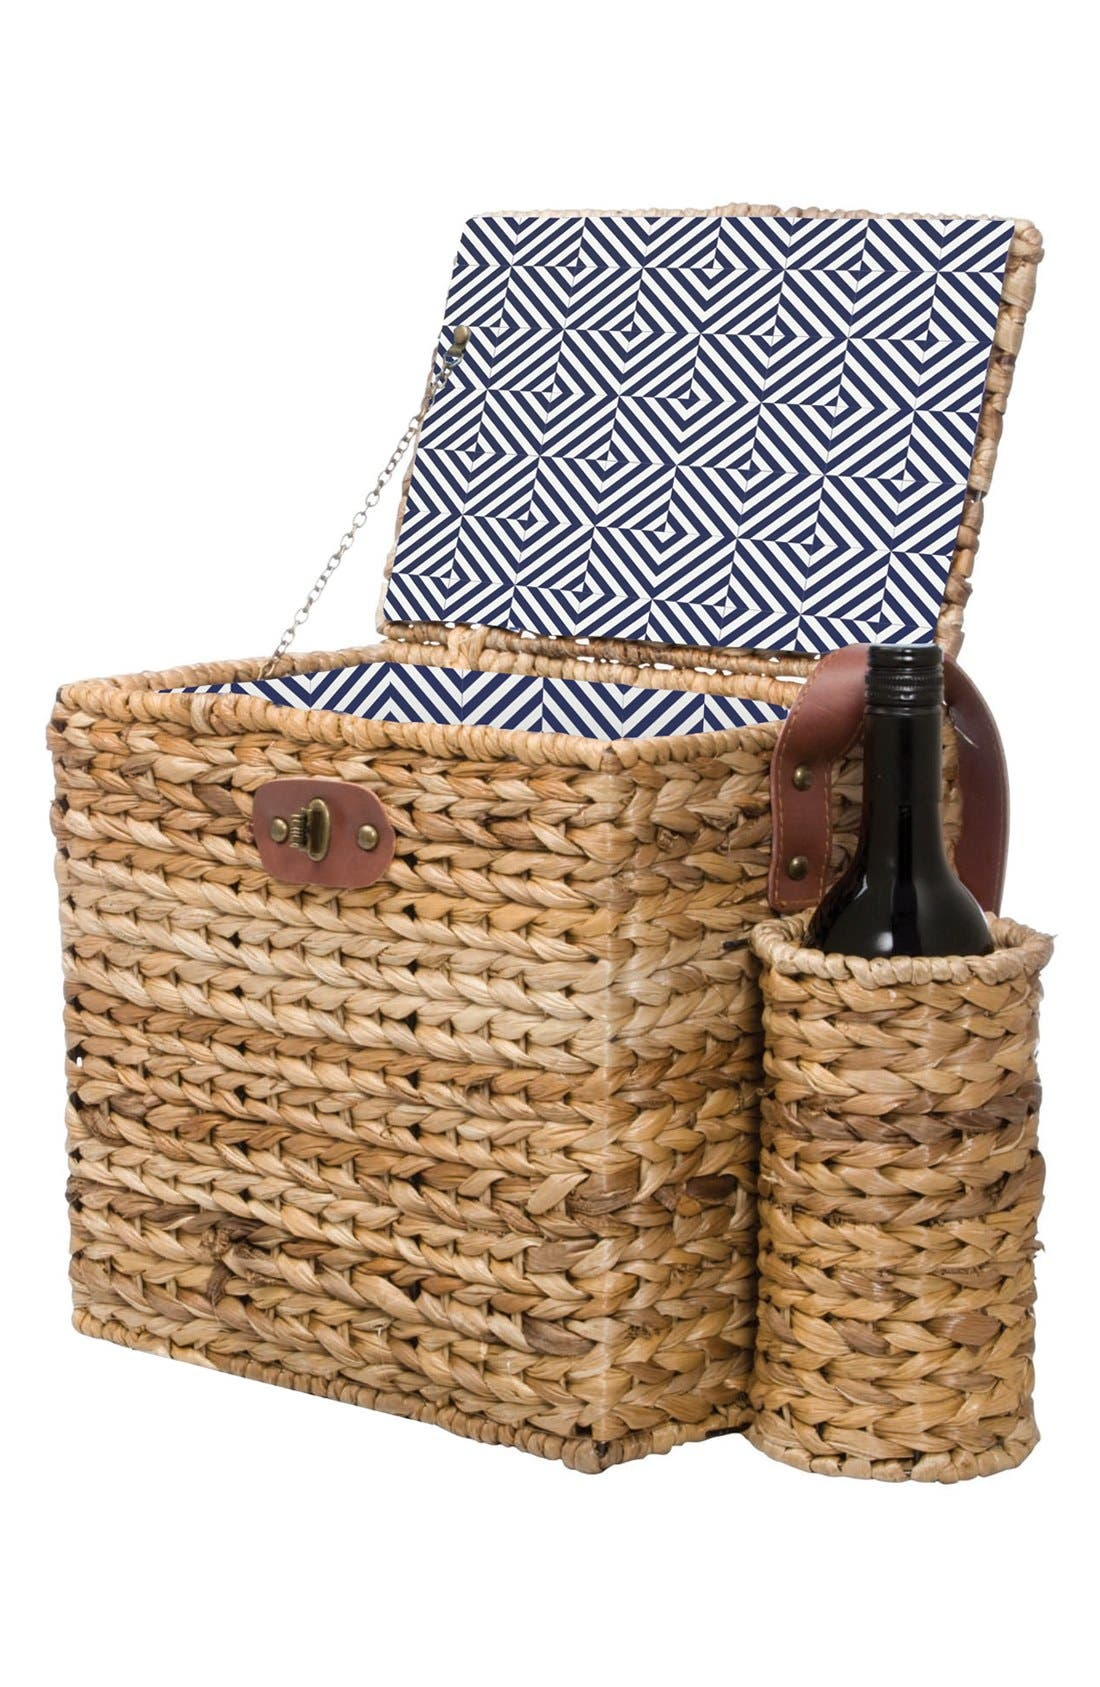 Alternate Image 1 Selected - Sunnylife Wicker Picnic Basket